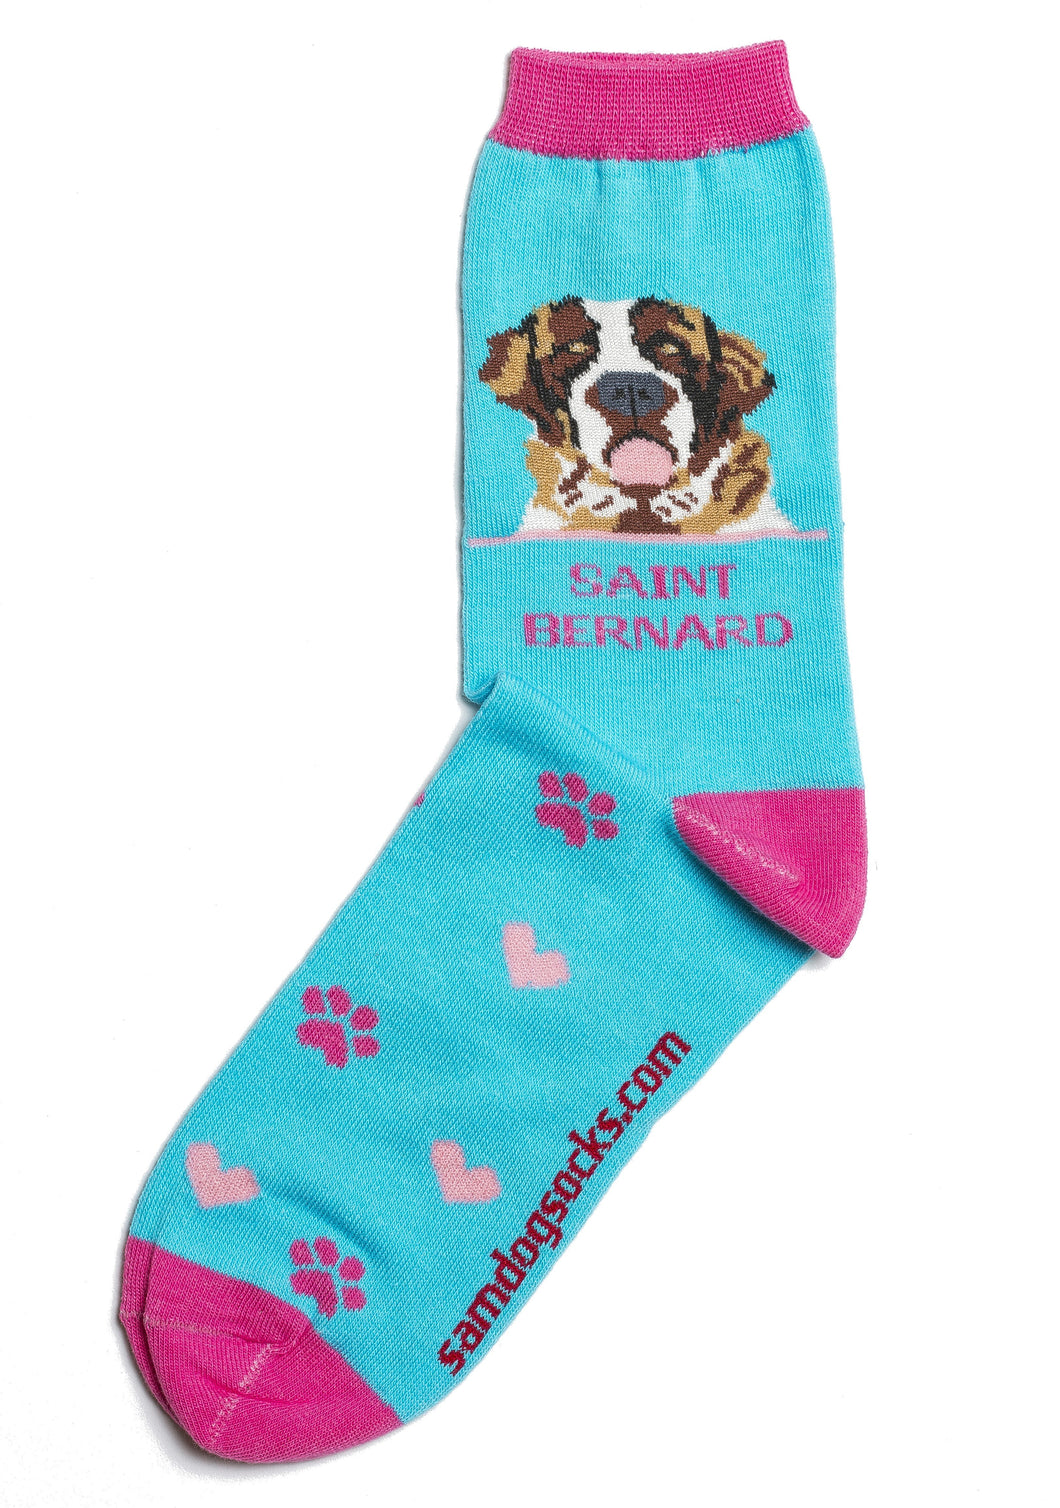 Saint Bernard Dog Socks - samnoveltysocks.com